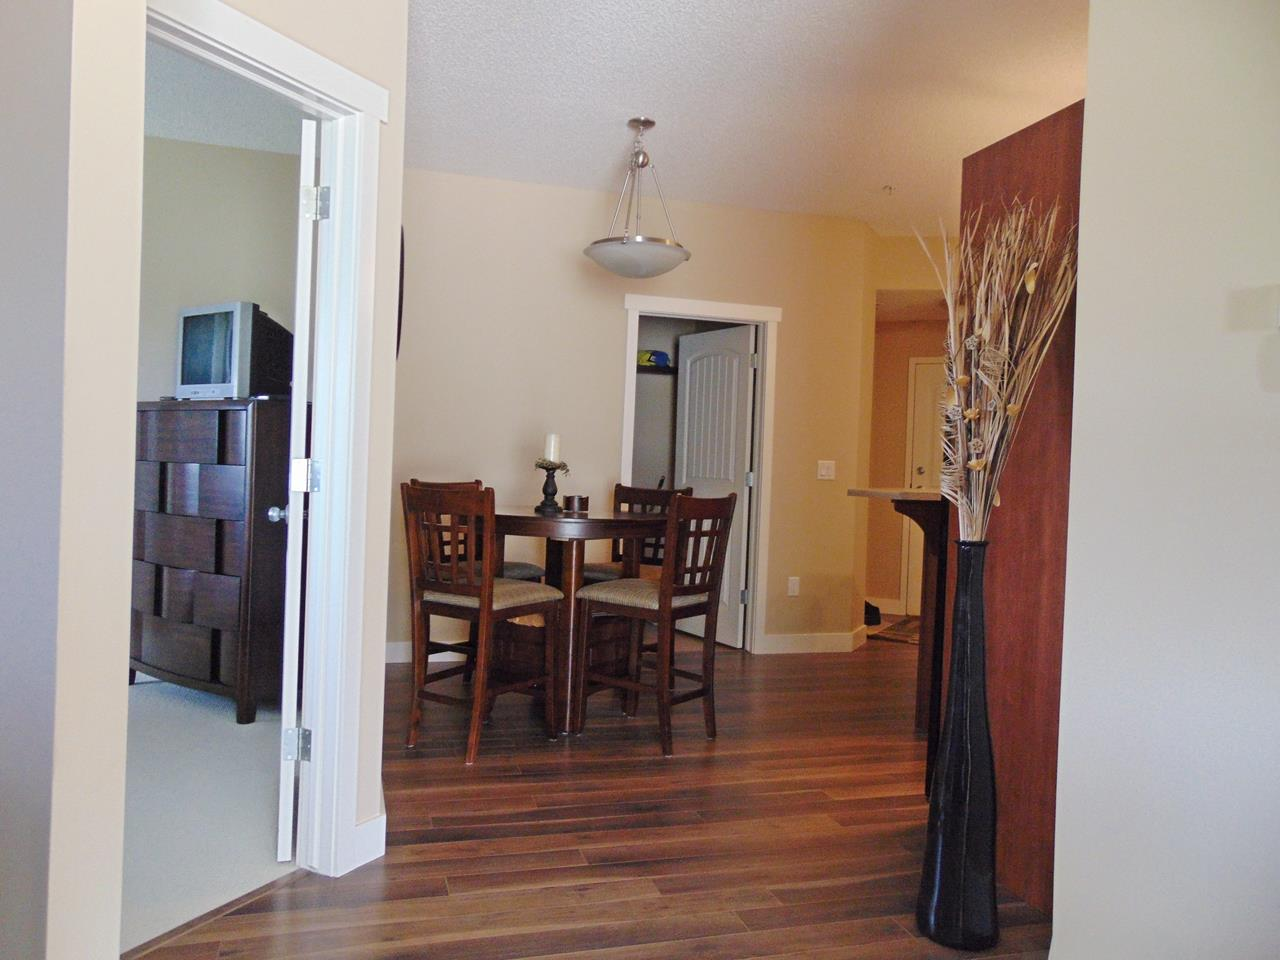 Photo 10: 203 4922 52 Street: Gibbons Condo for sale : MLS® # E4071334